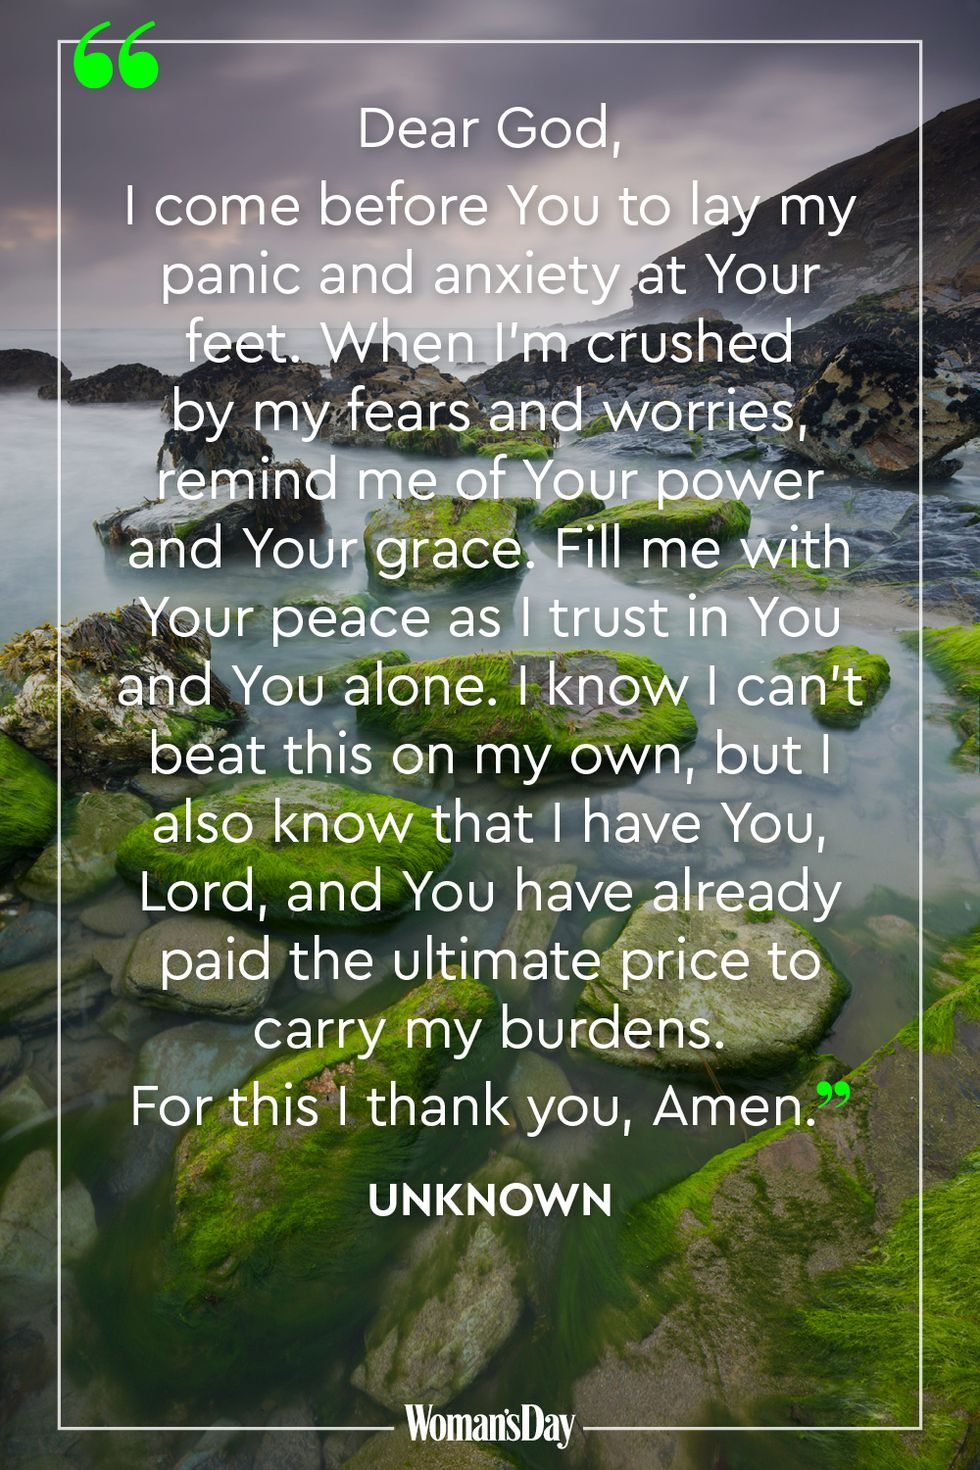 wdy-prayers-for-anxiety-1572290723 1